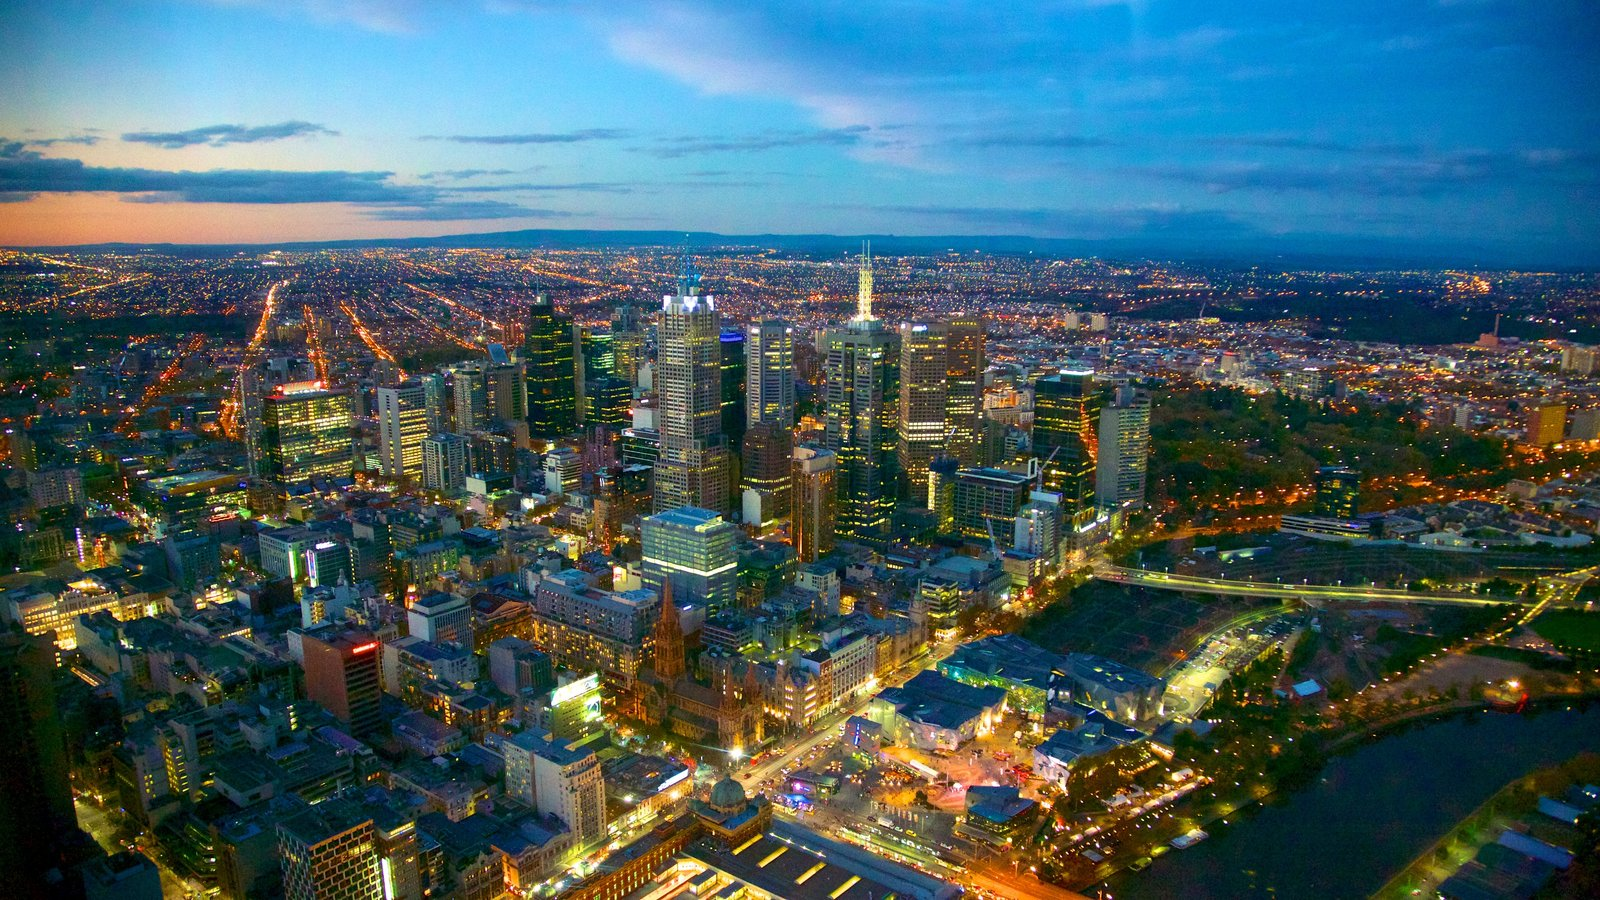 Eureka Tower which includes central business district, a high rise building and a sunset